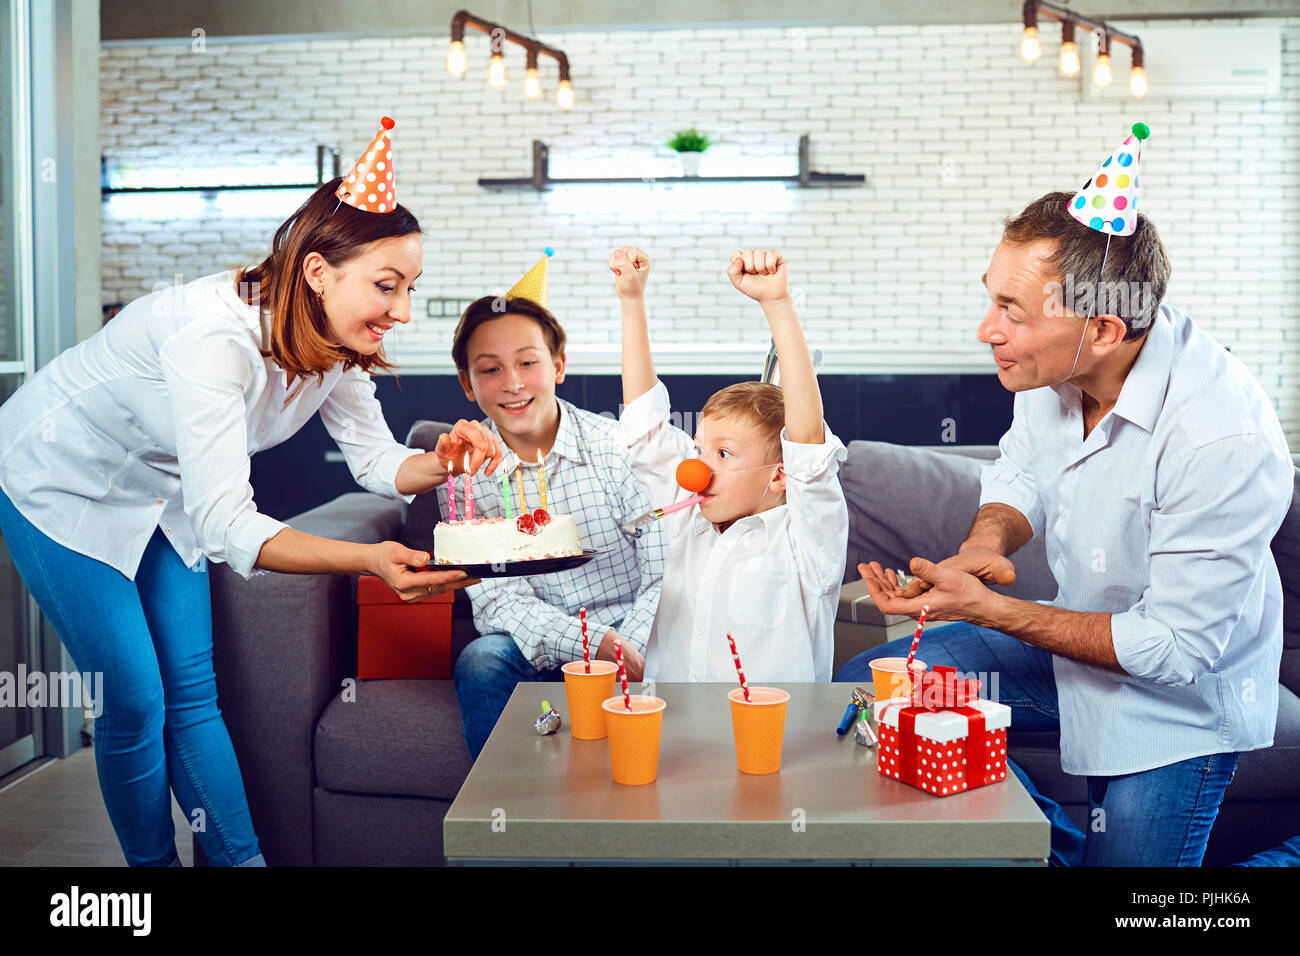 A family with a candle cake celebrates a birthday party. - Stock Image